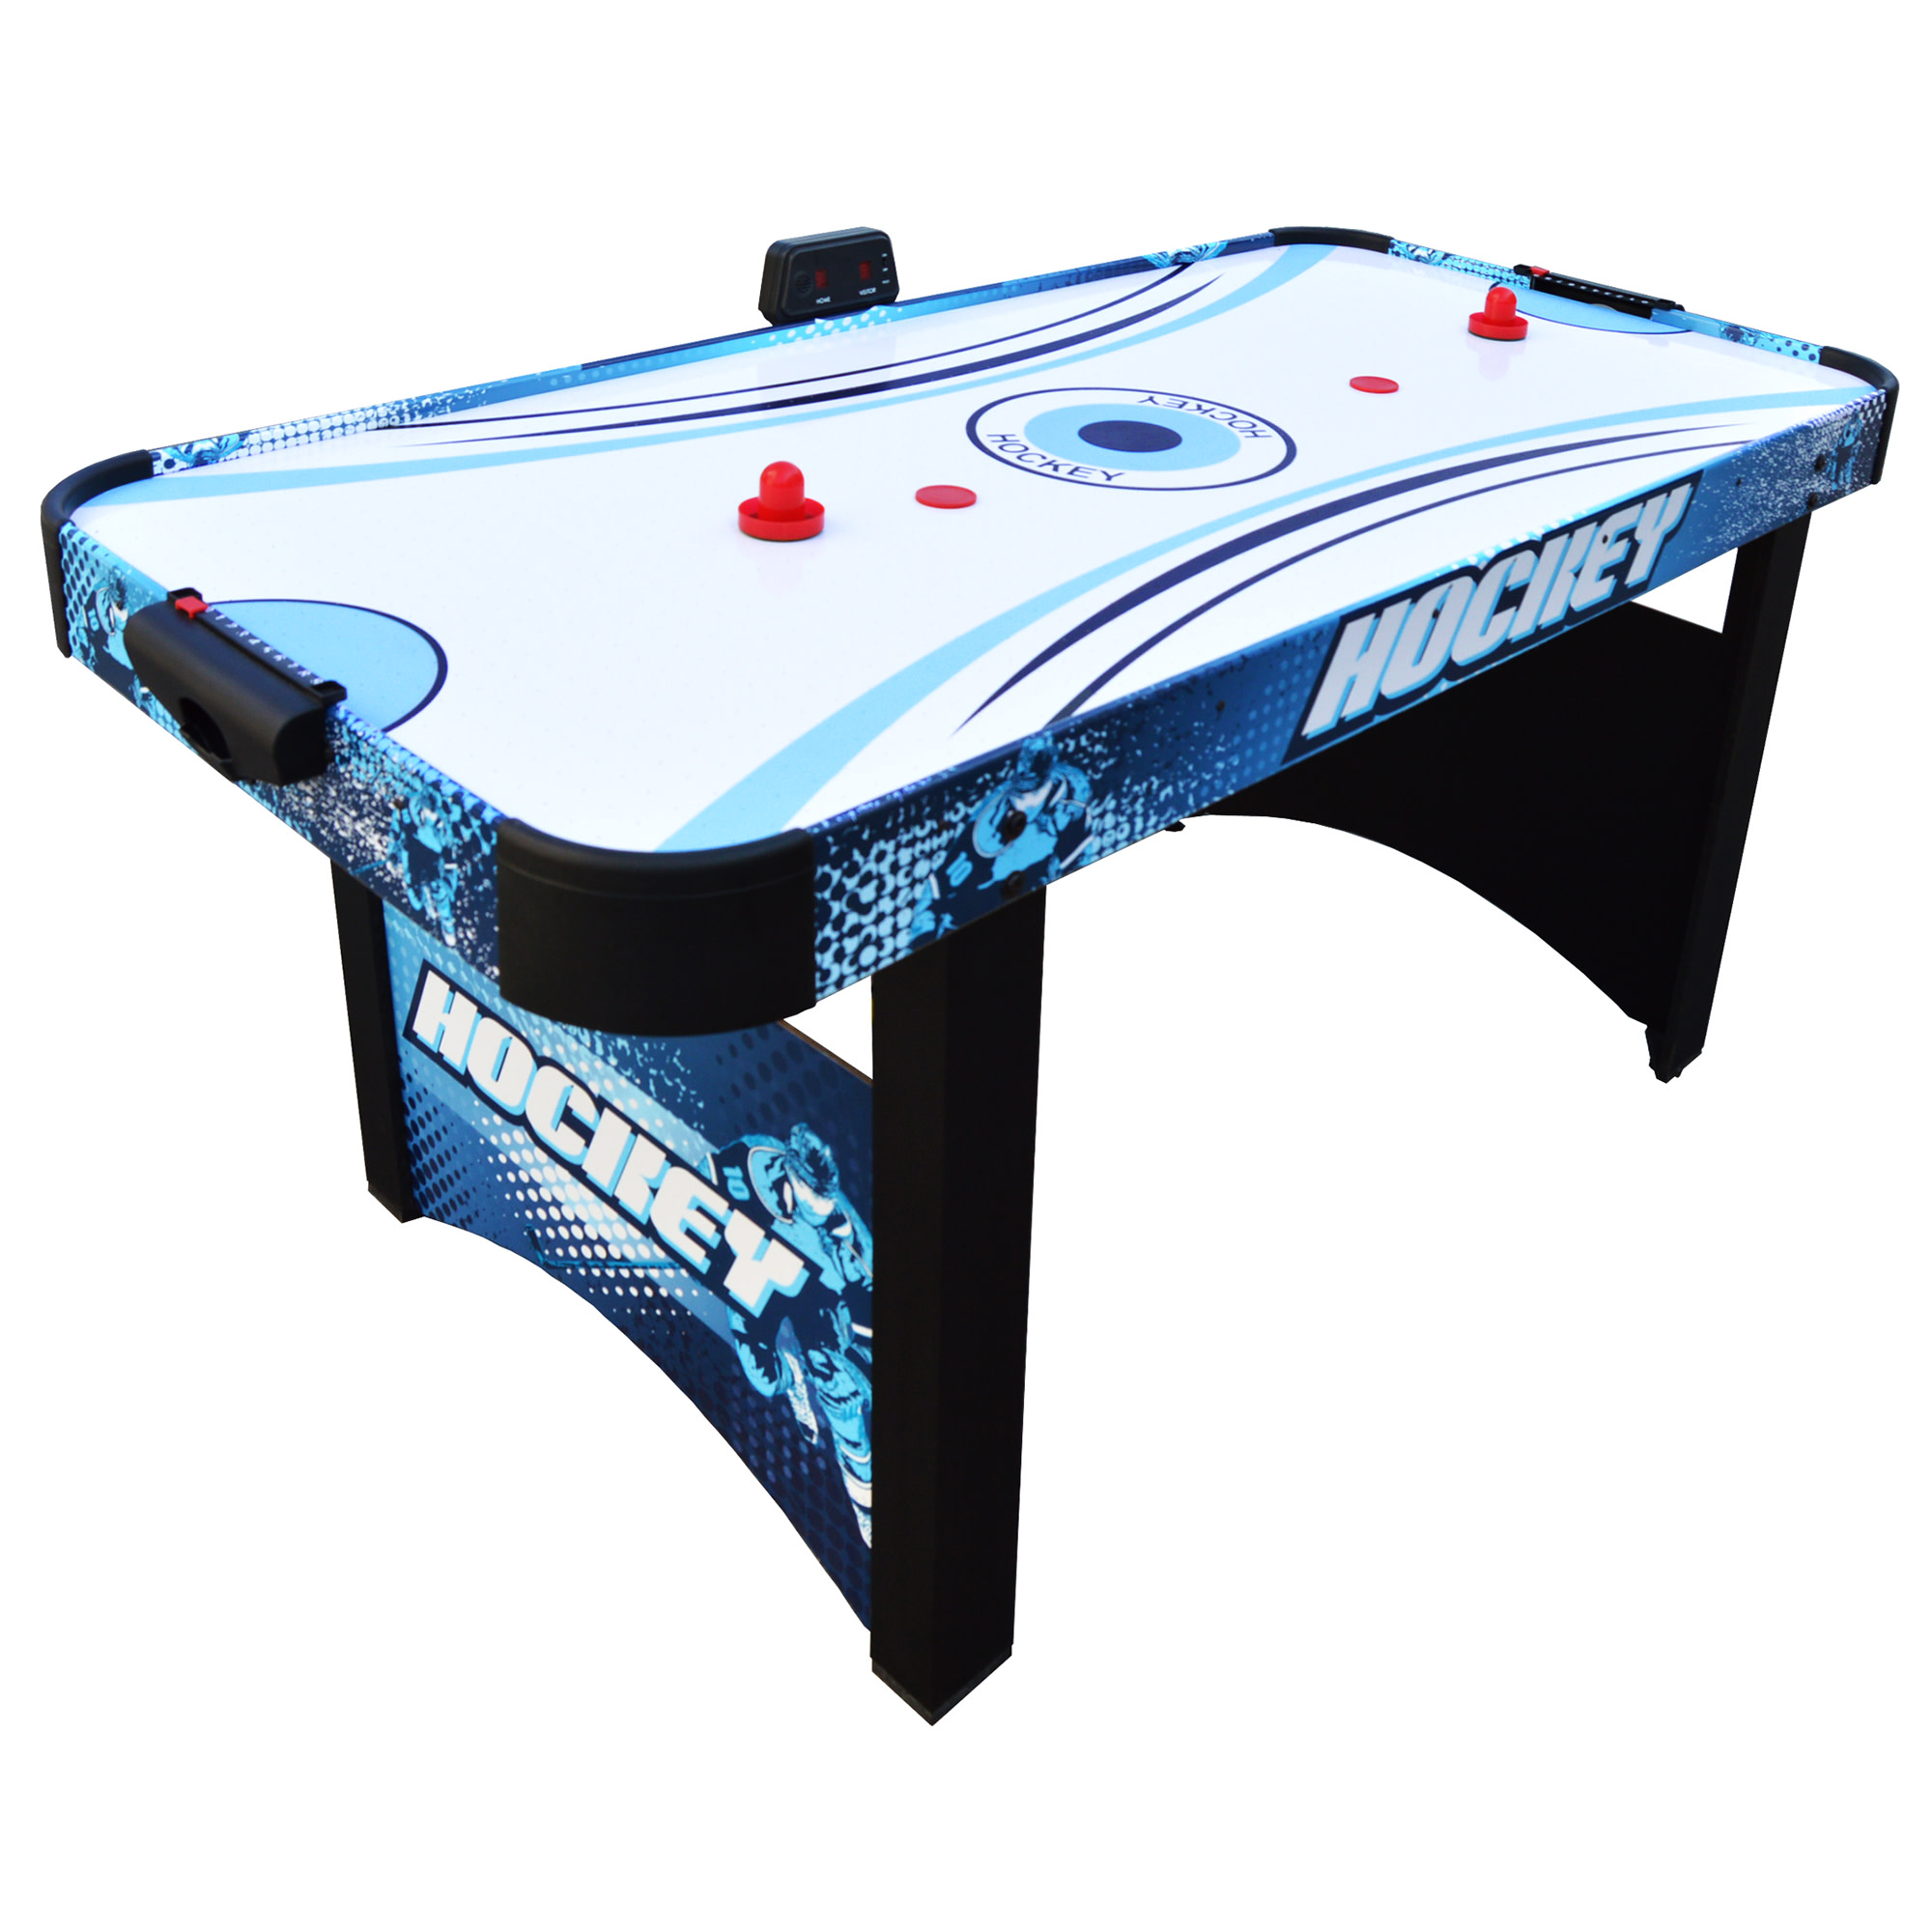 Hathaway Enforcer Air Hockey Table, 5.5-ft, Blue/Black